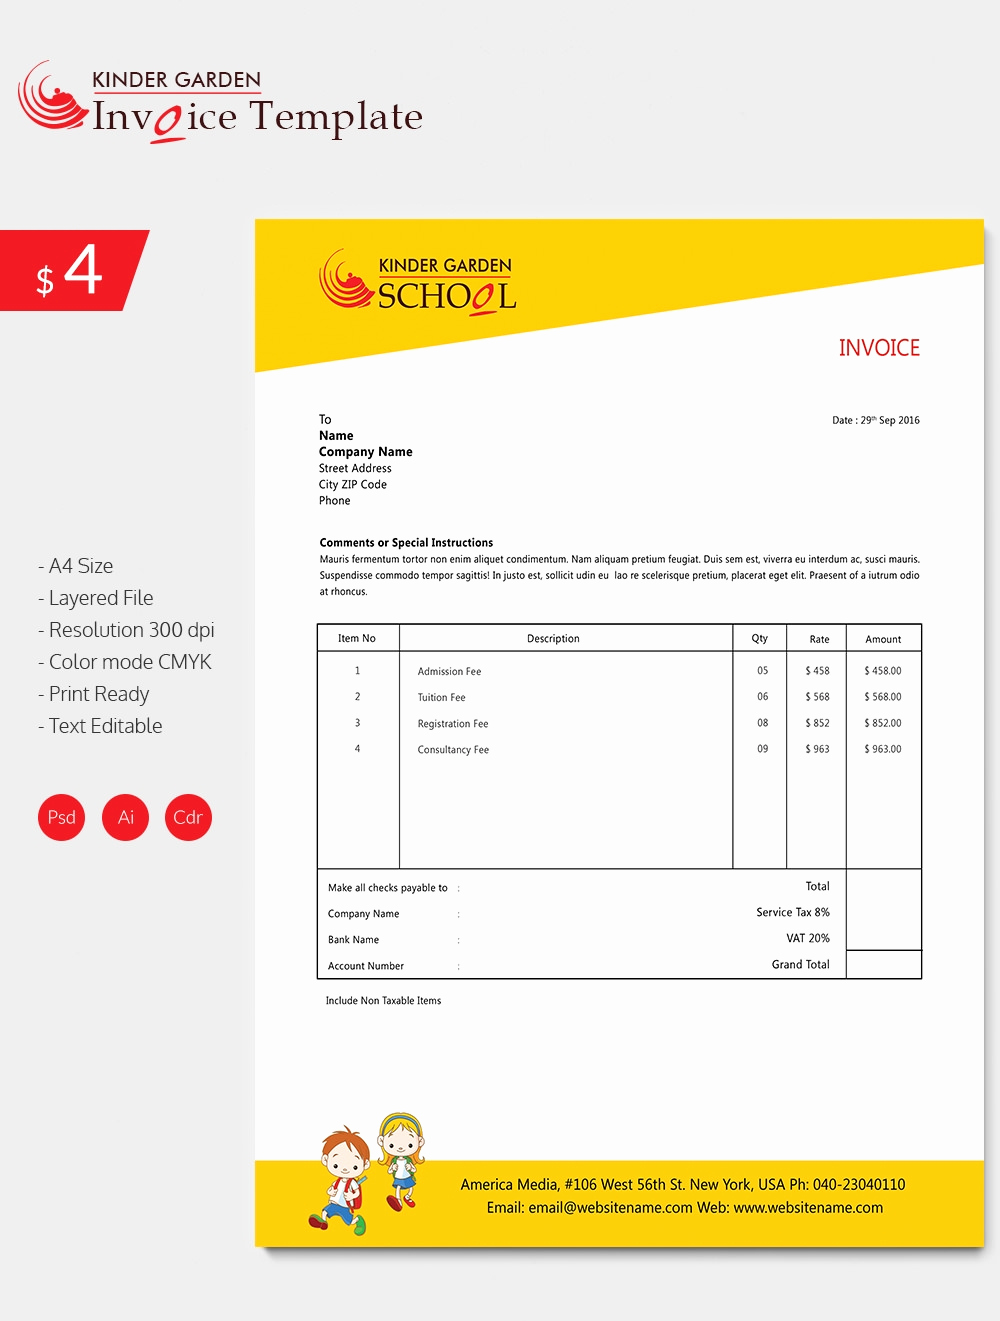 Invoice format In Word Best Of Invoice Template 41 Free Word Excel Pdf Psd format